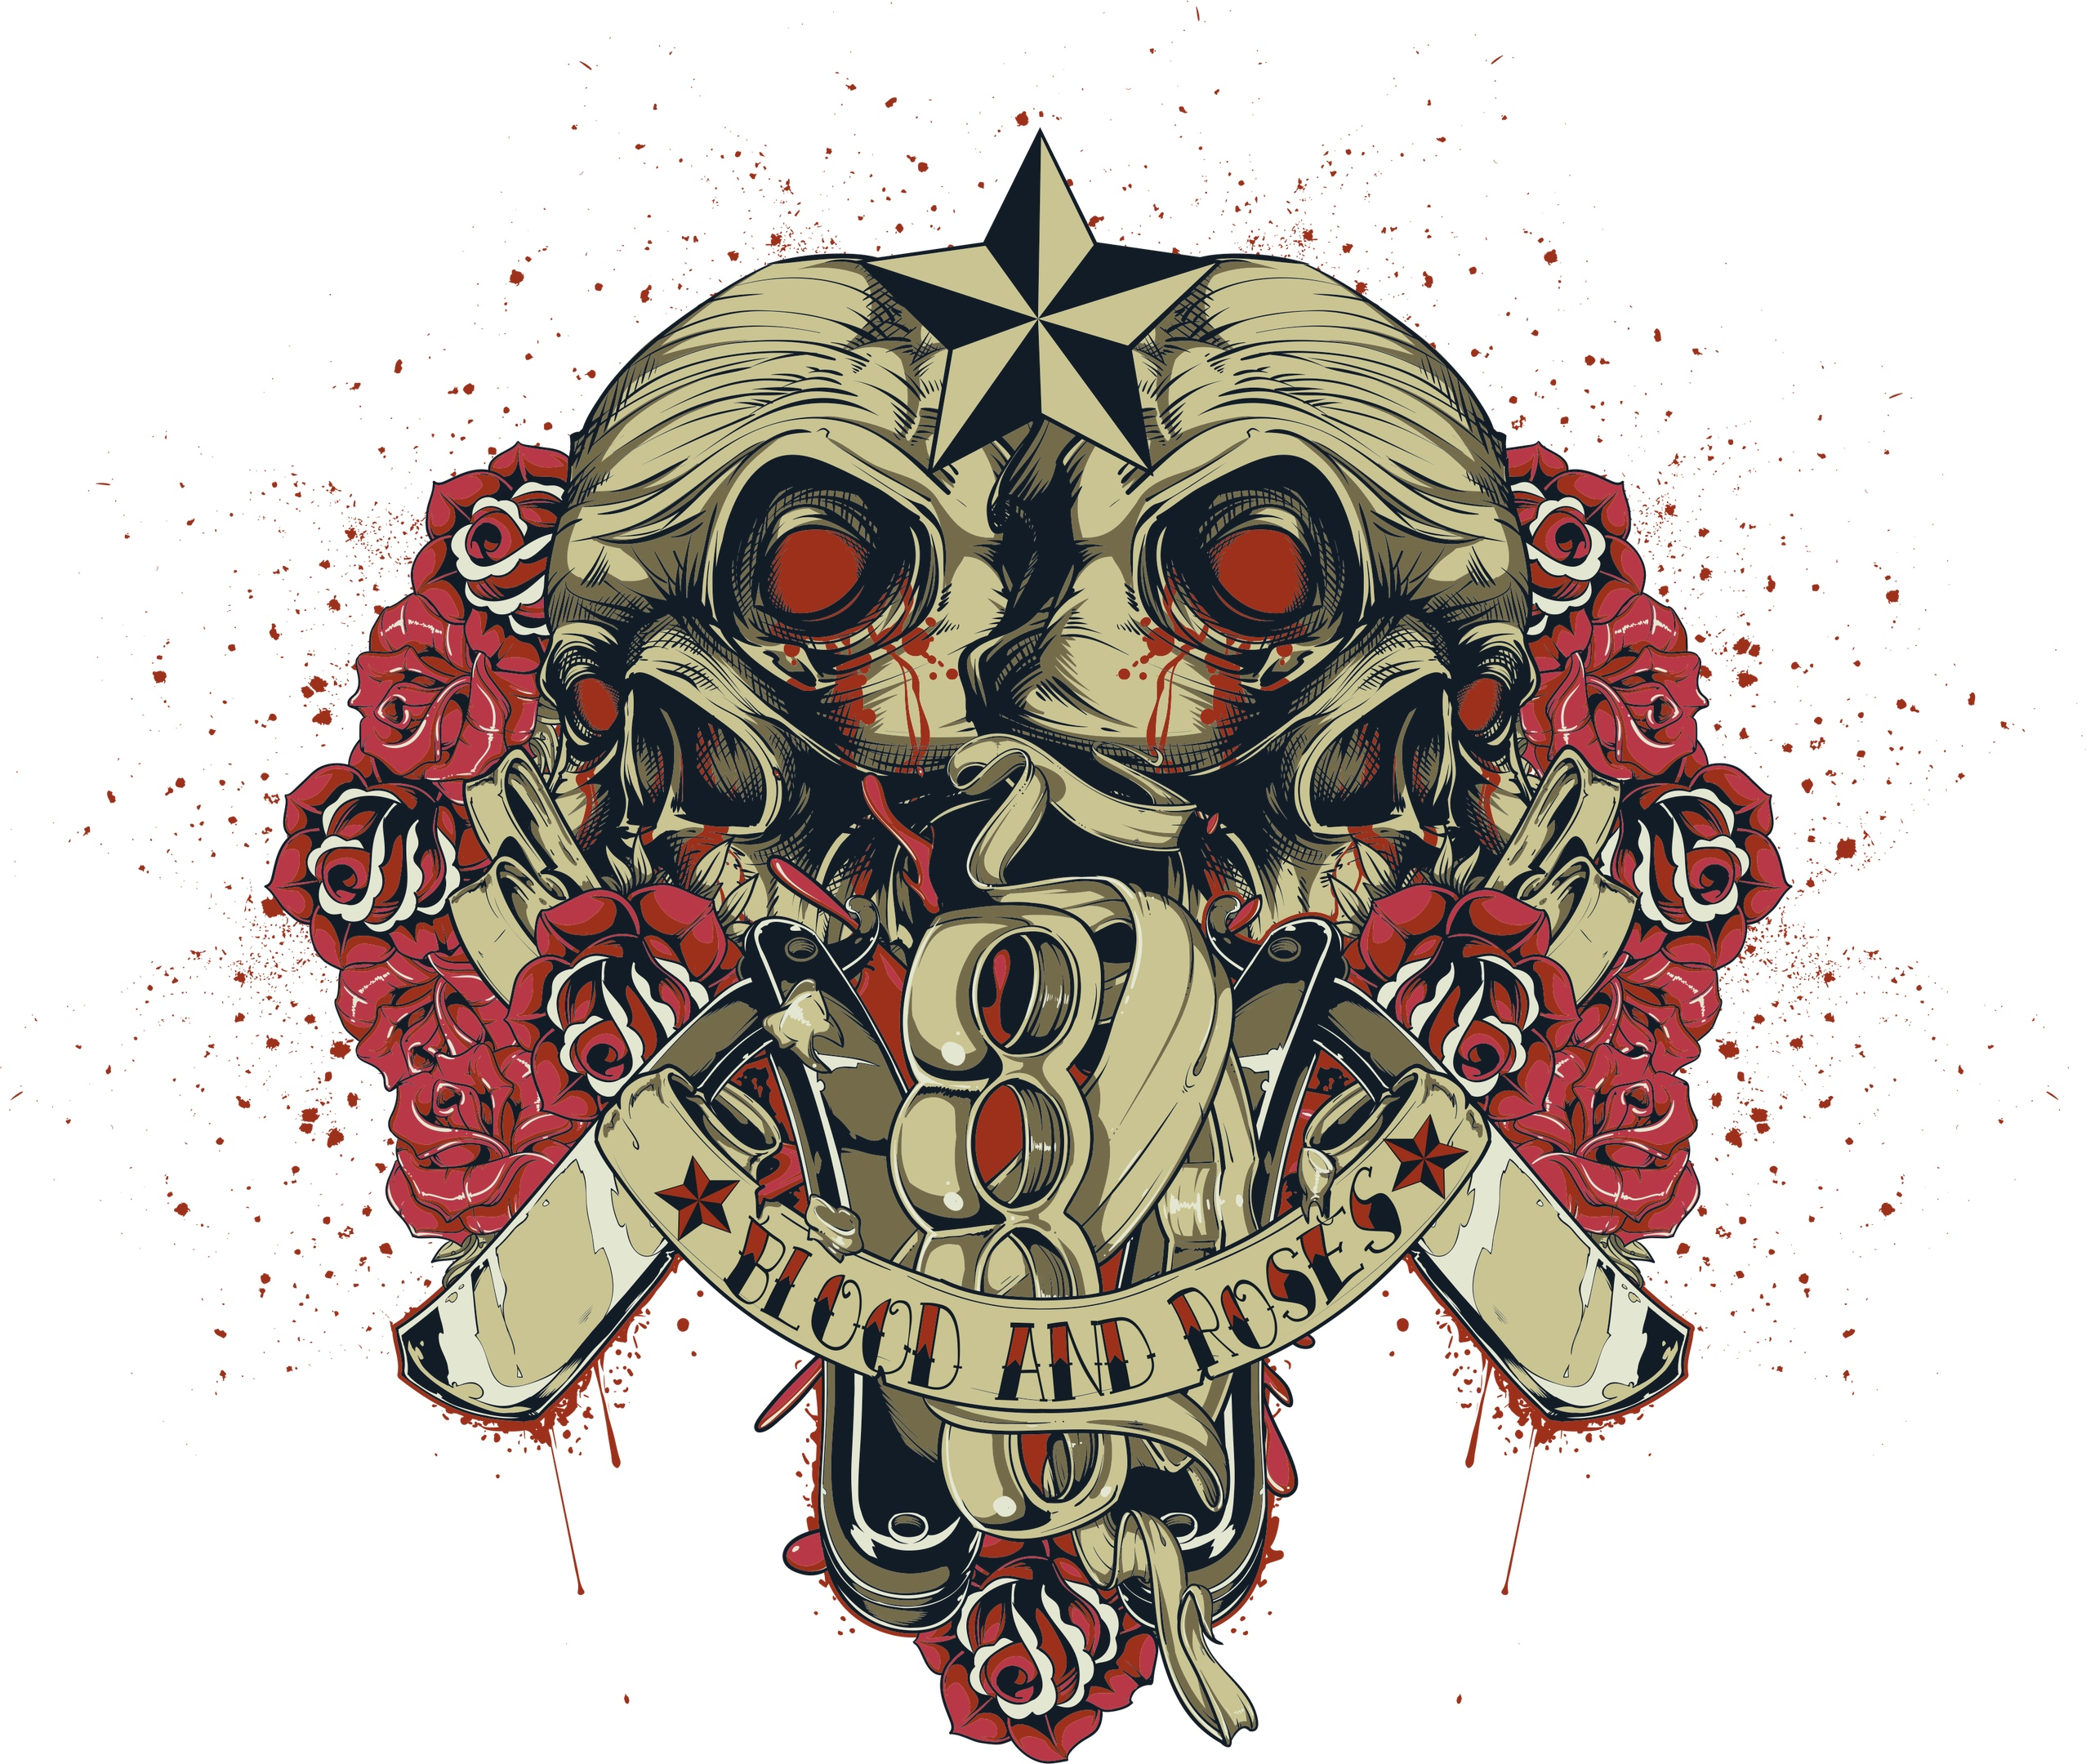 Blood And Roses Print File Free CDR Vectors Art